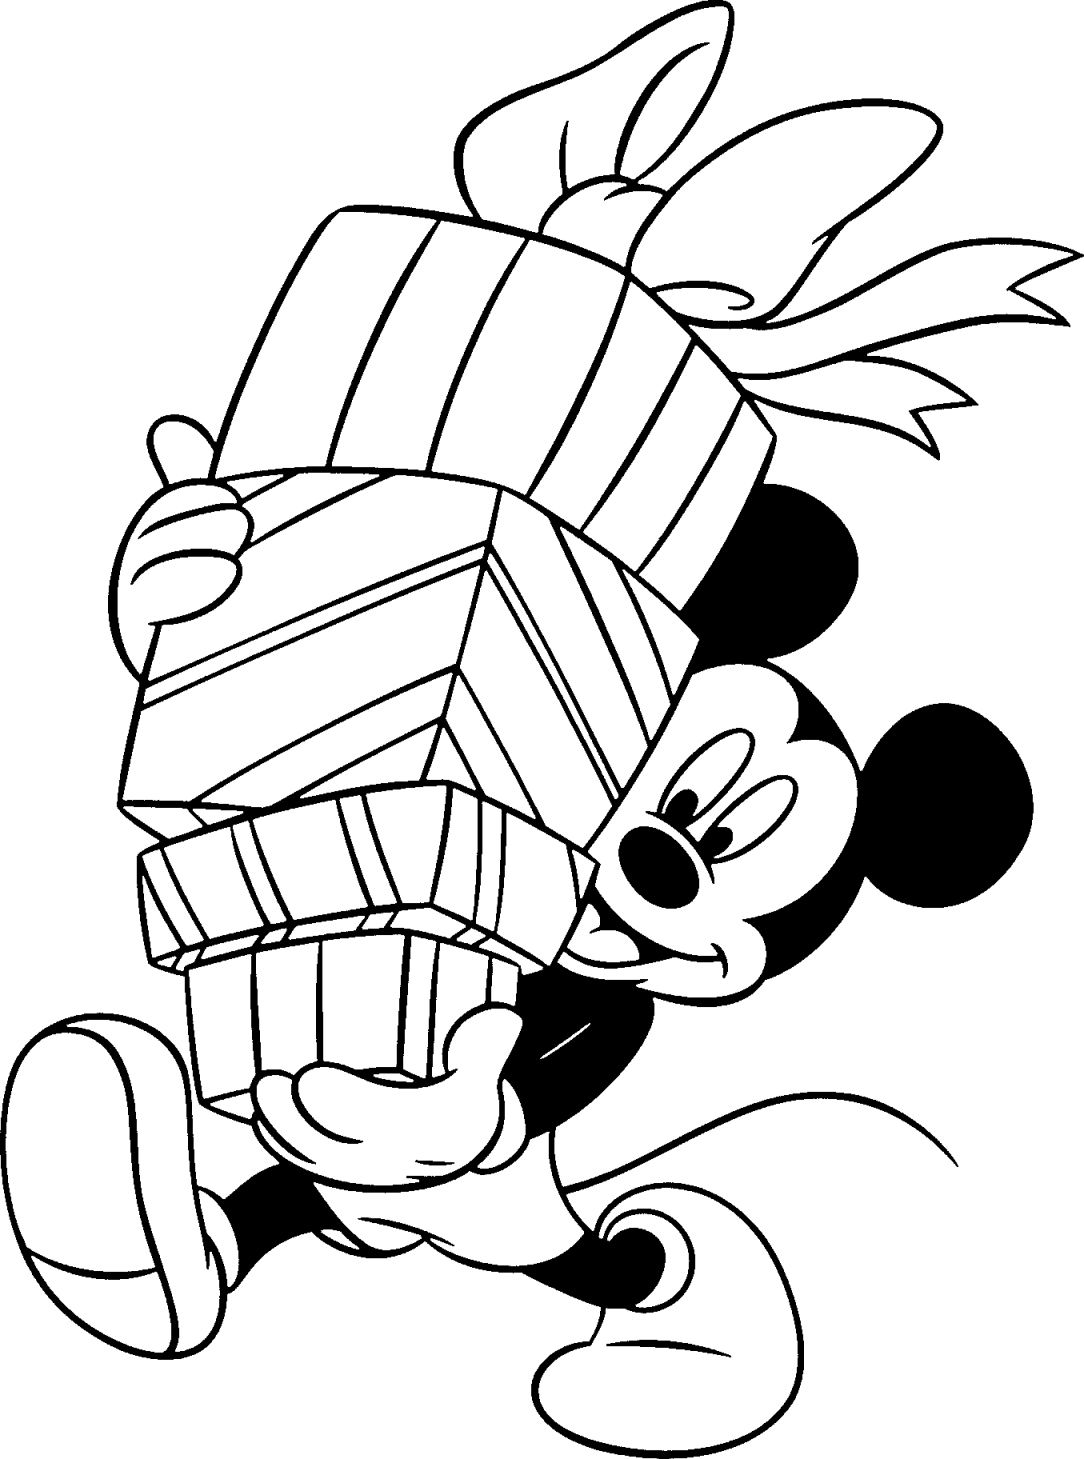 Disney Christmas Coloring Pages Free Disney Coloring Pages